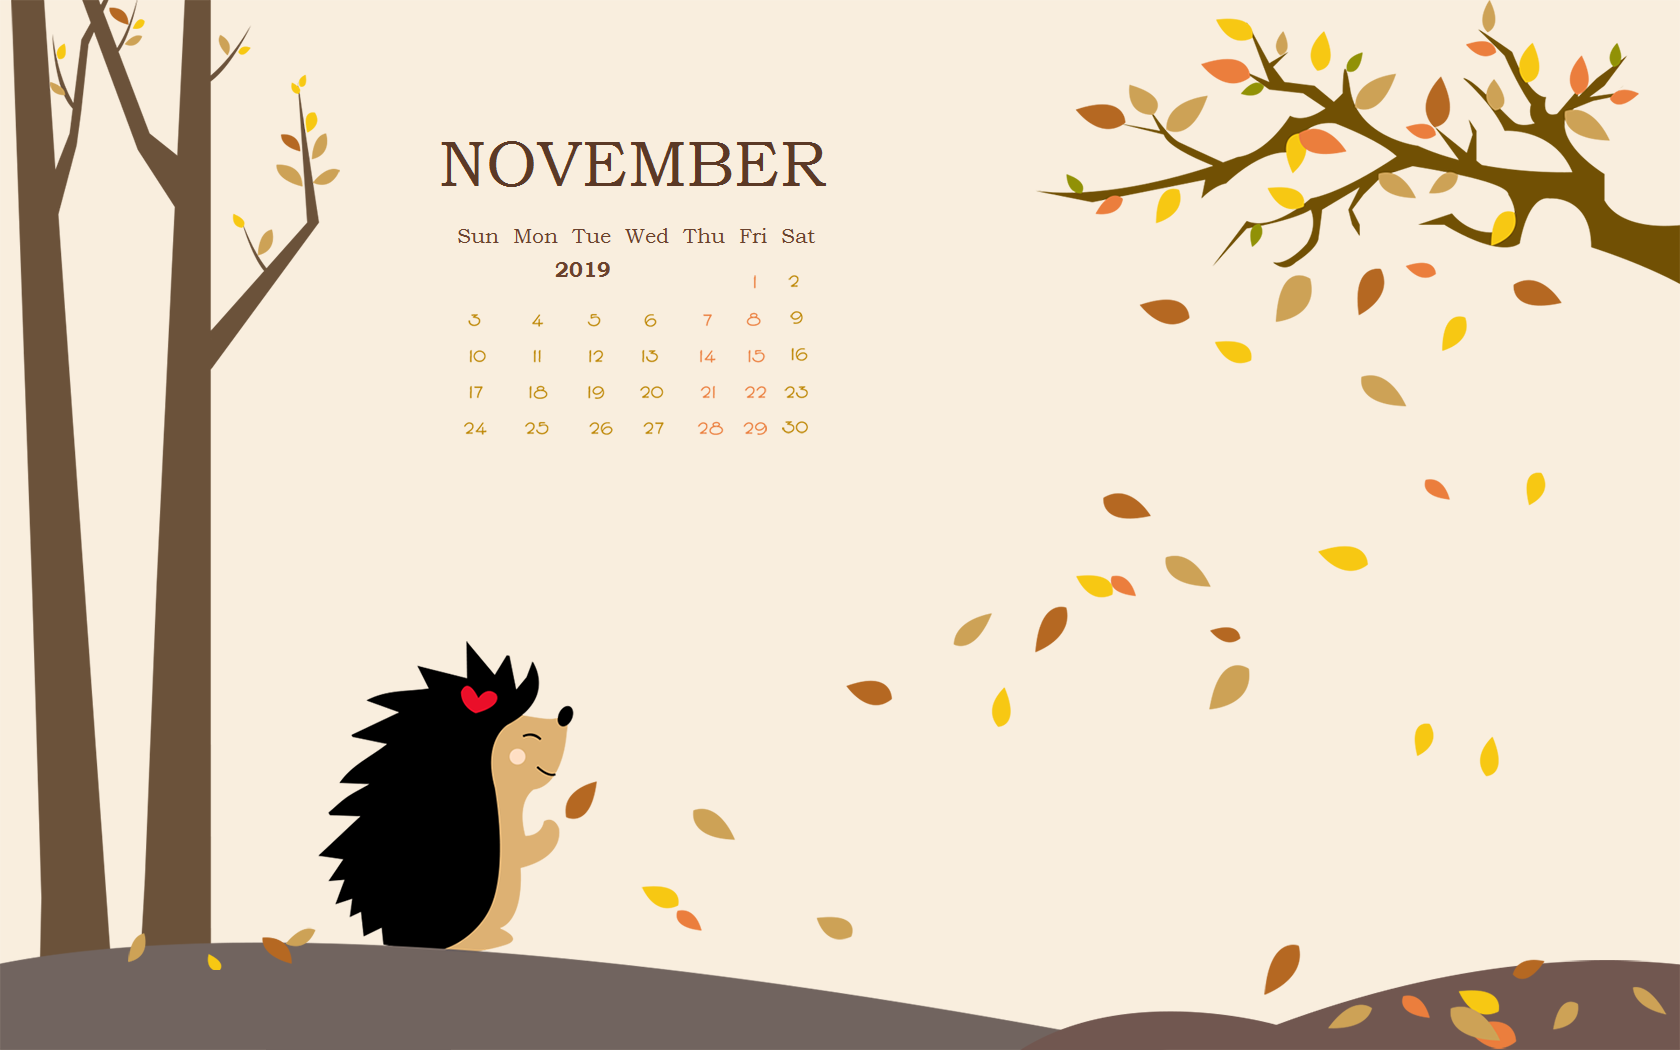 Floral November 2019 Calendar Wallpaper for Desktop